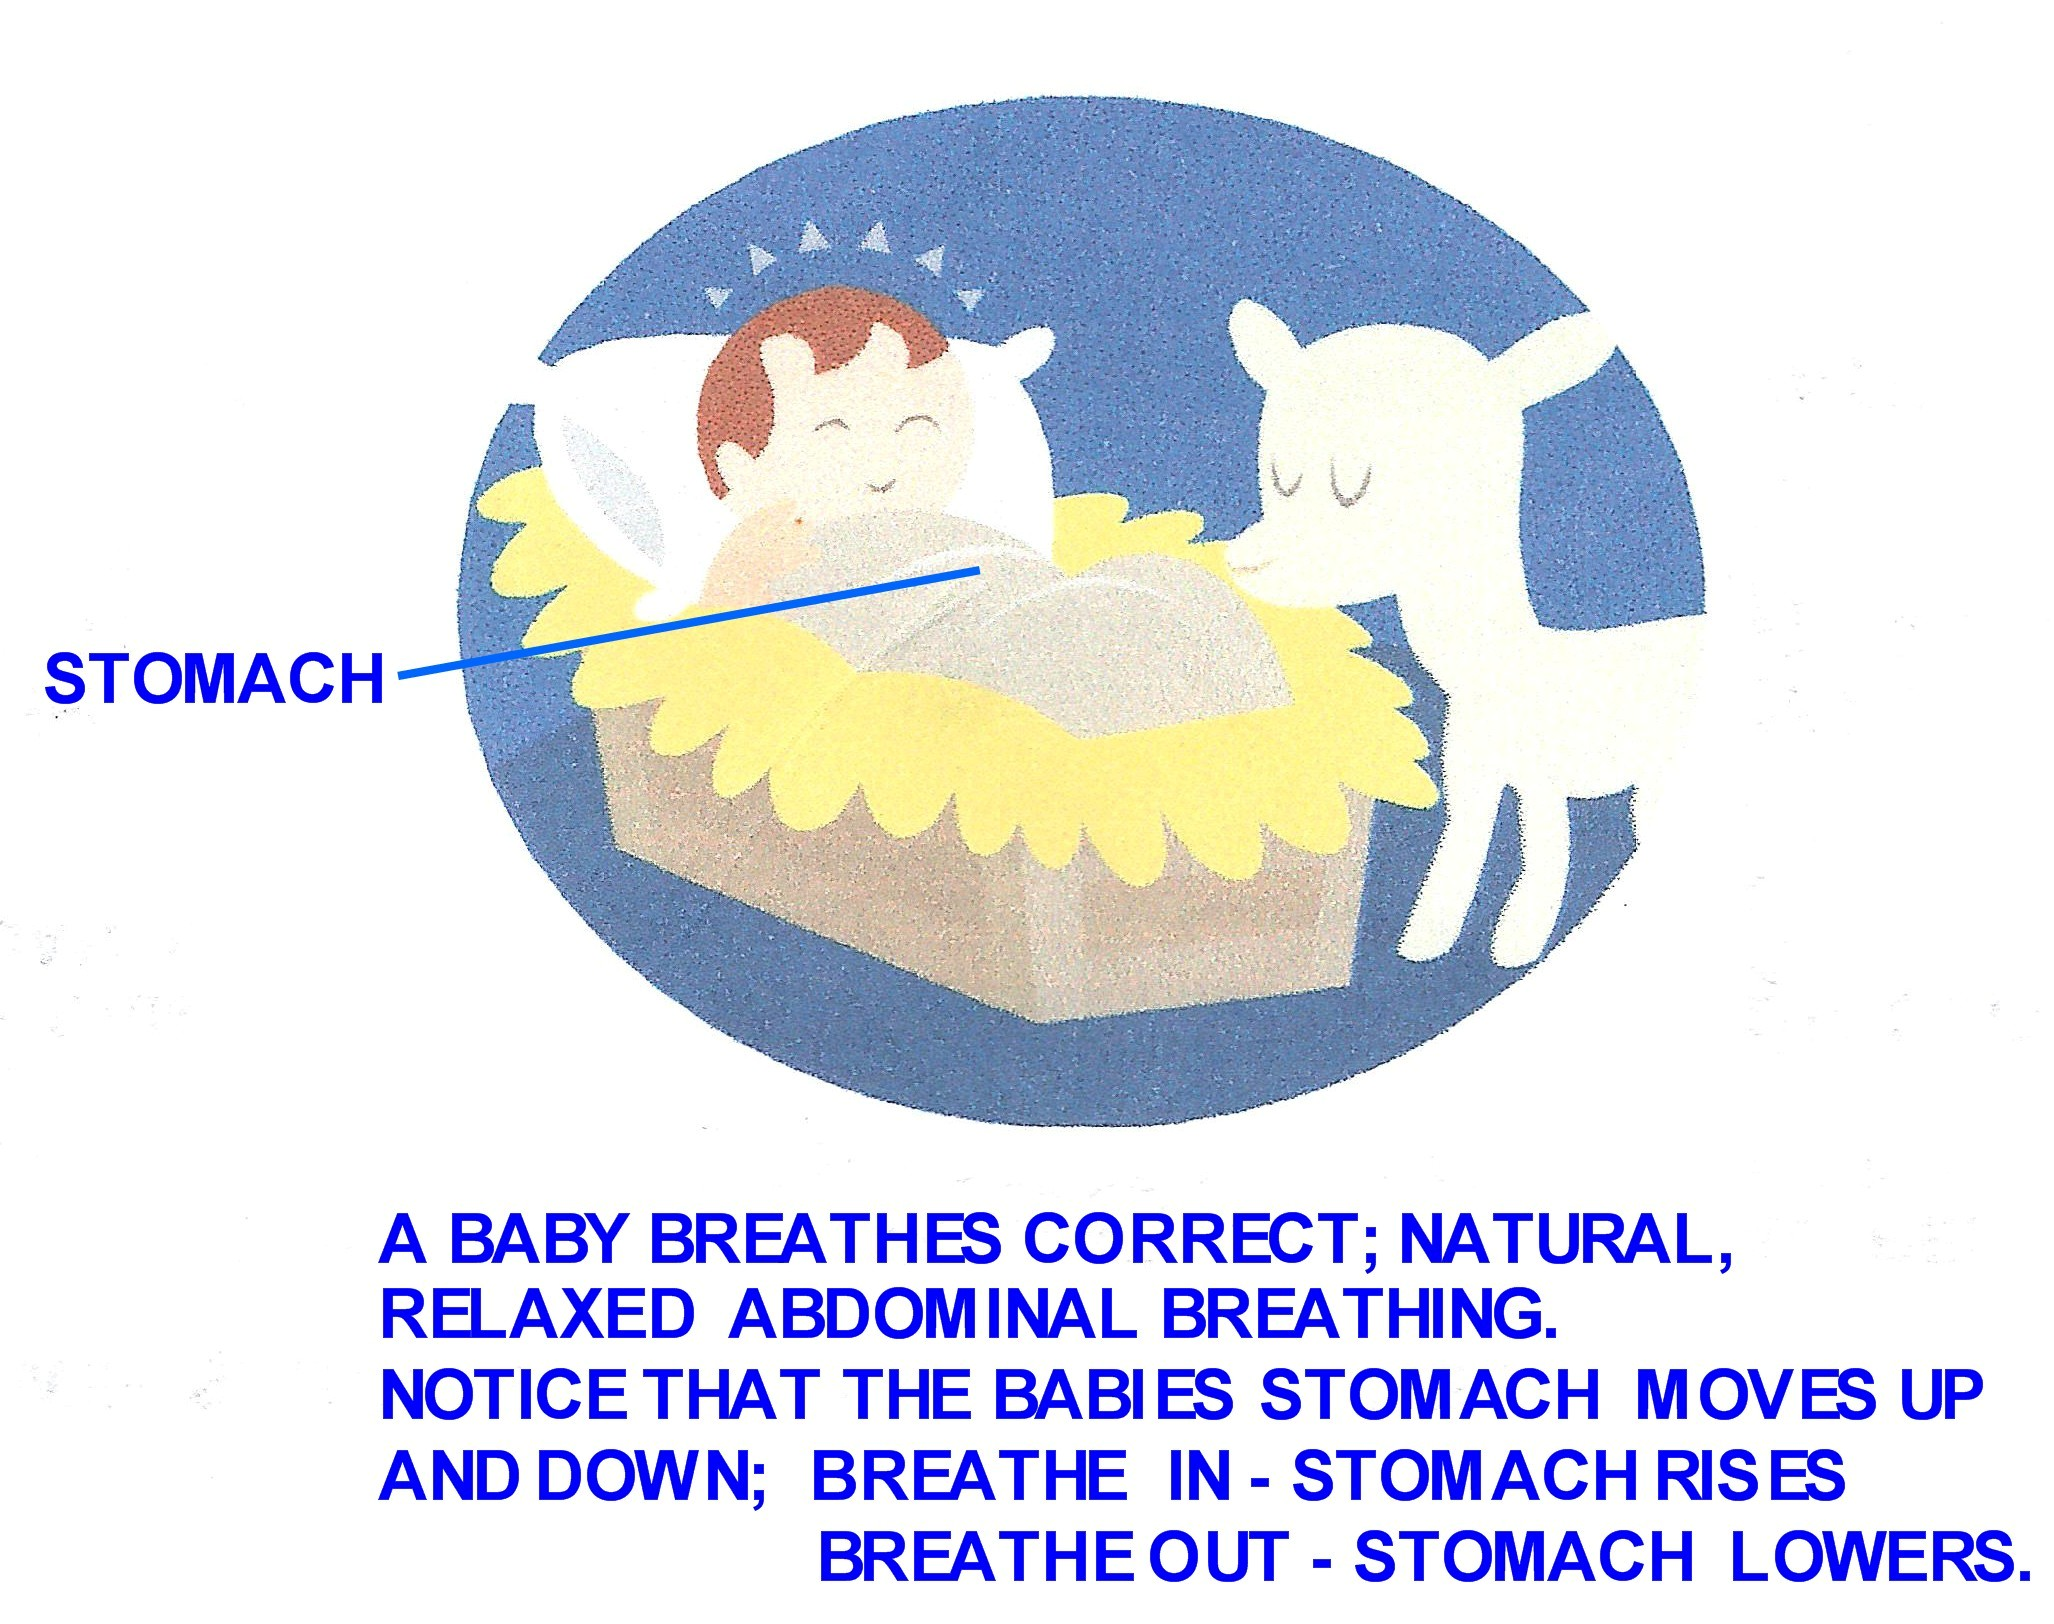 BABY BREATHES ABDOMINALLY, NATURALLY_001.jpg